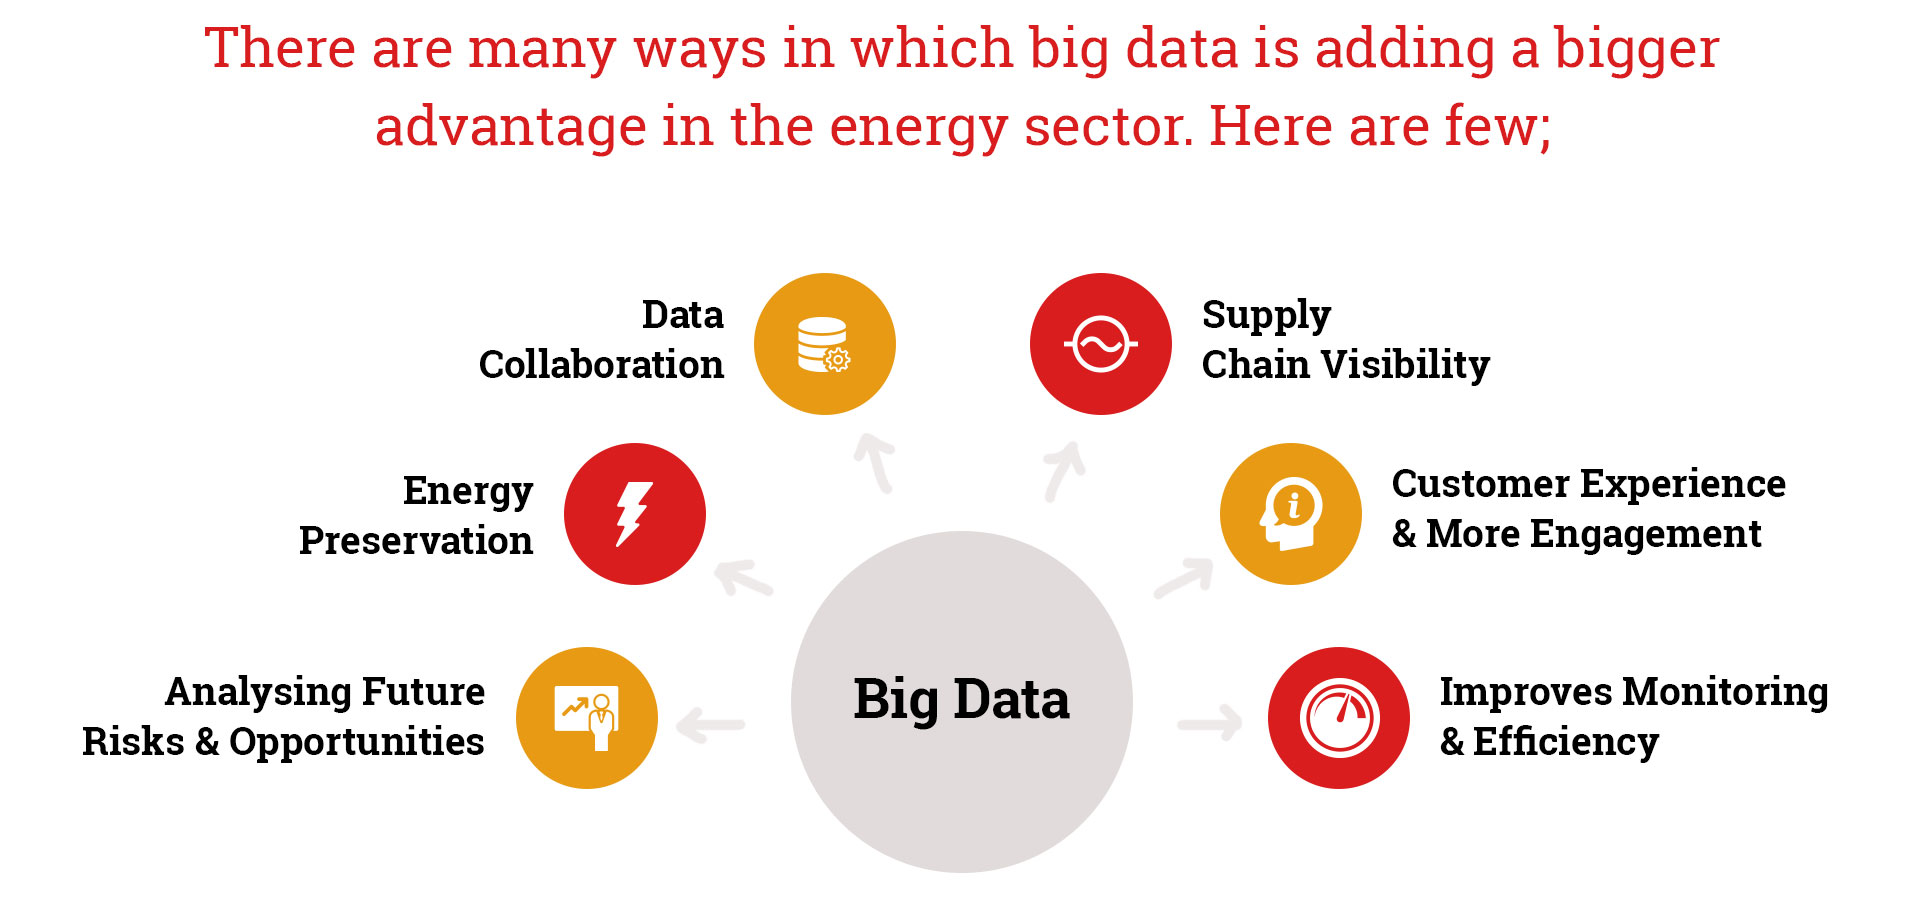 Big-Data-Advantages-in-Power-Sector